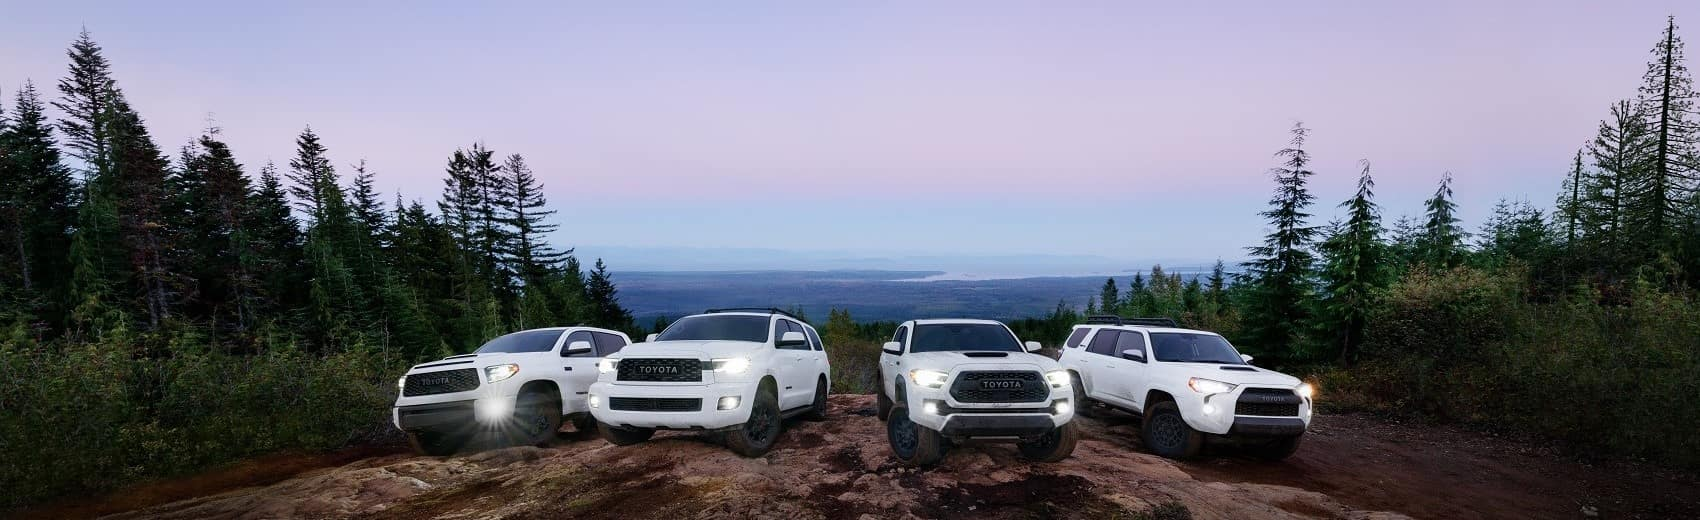 2021 Toyota lineup on a mountain banner